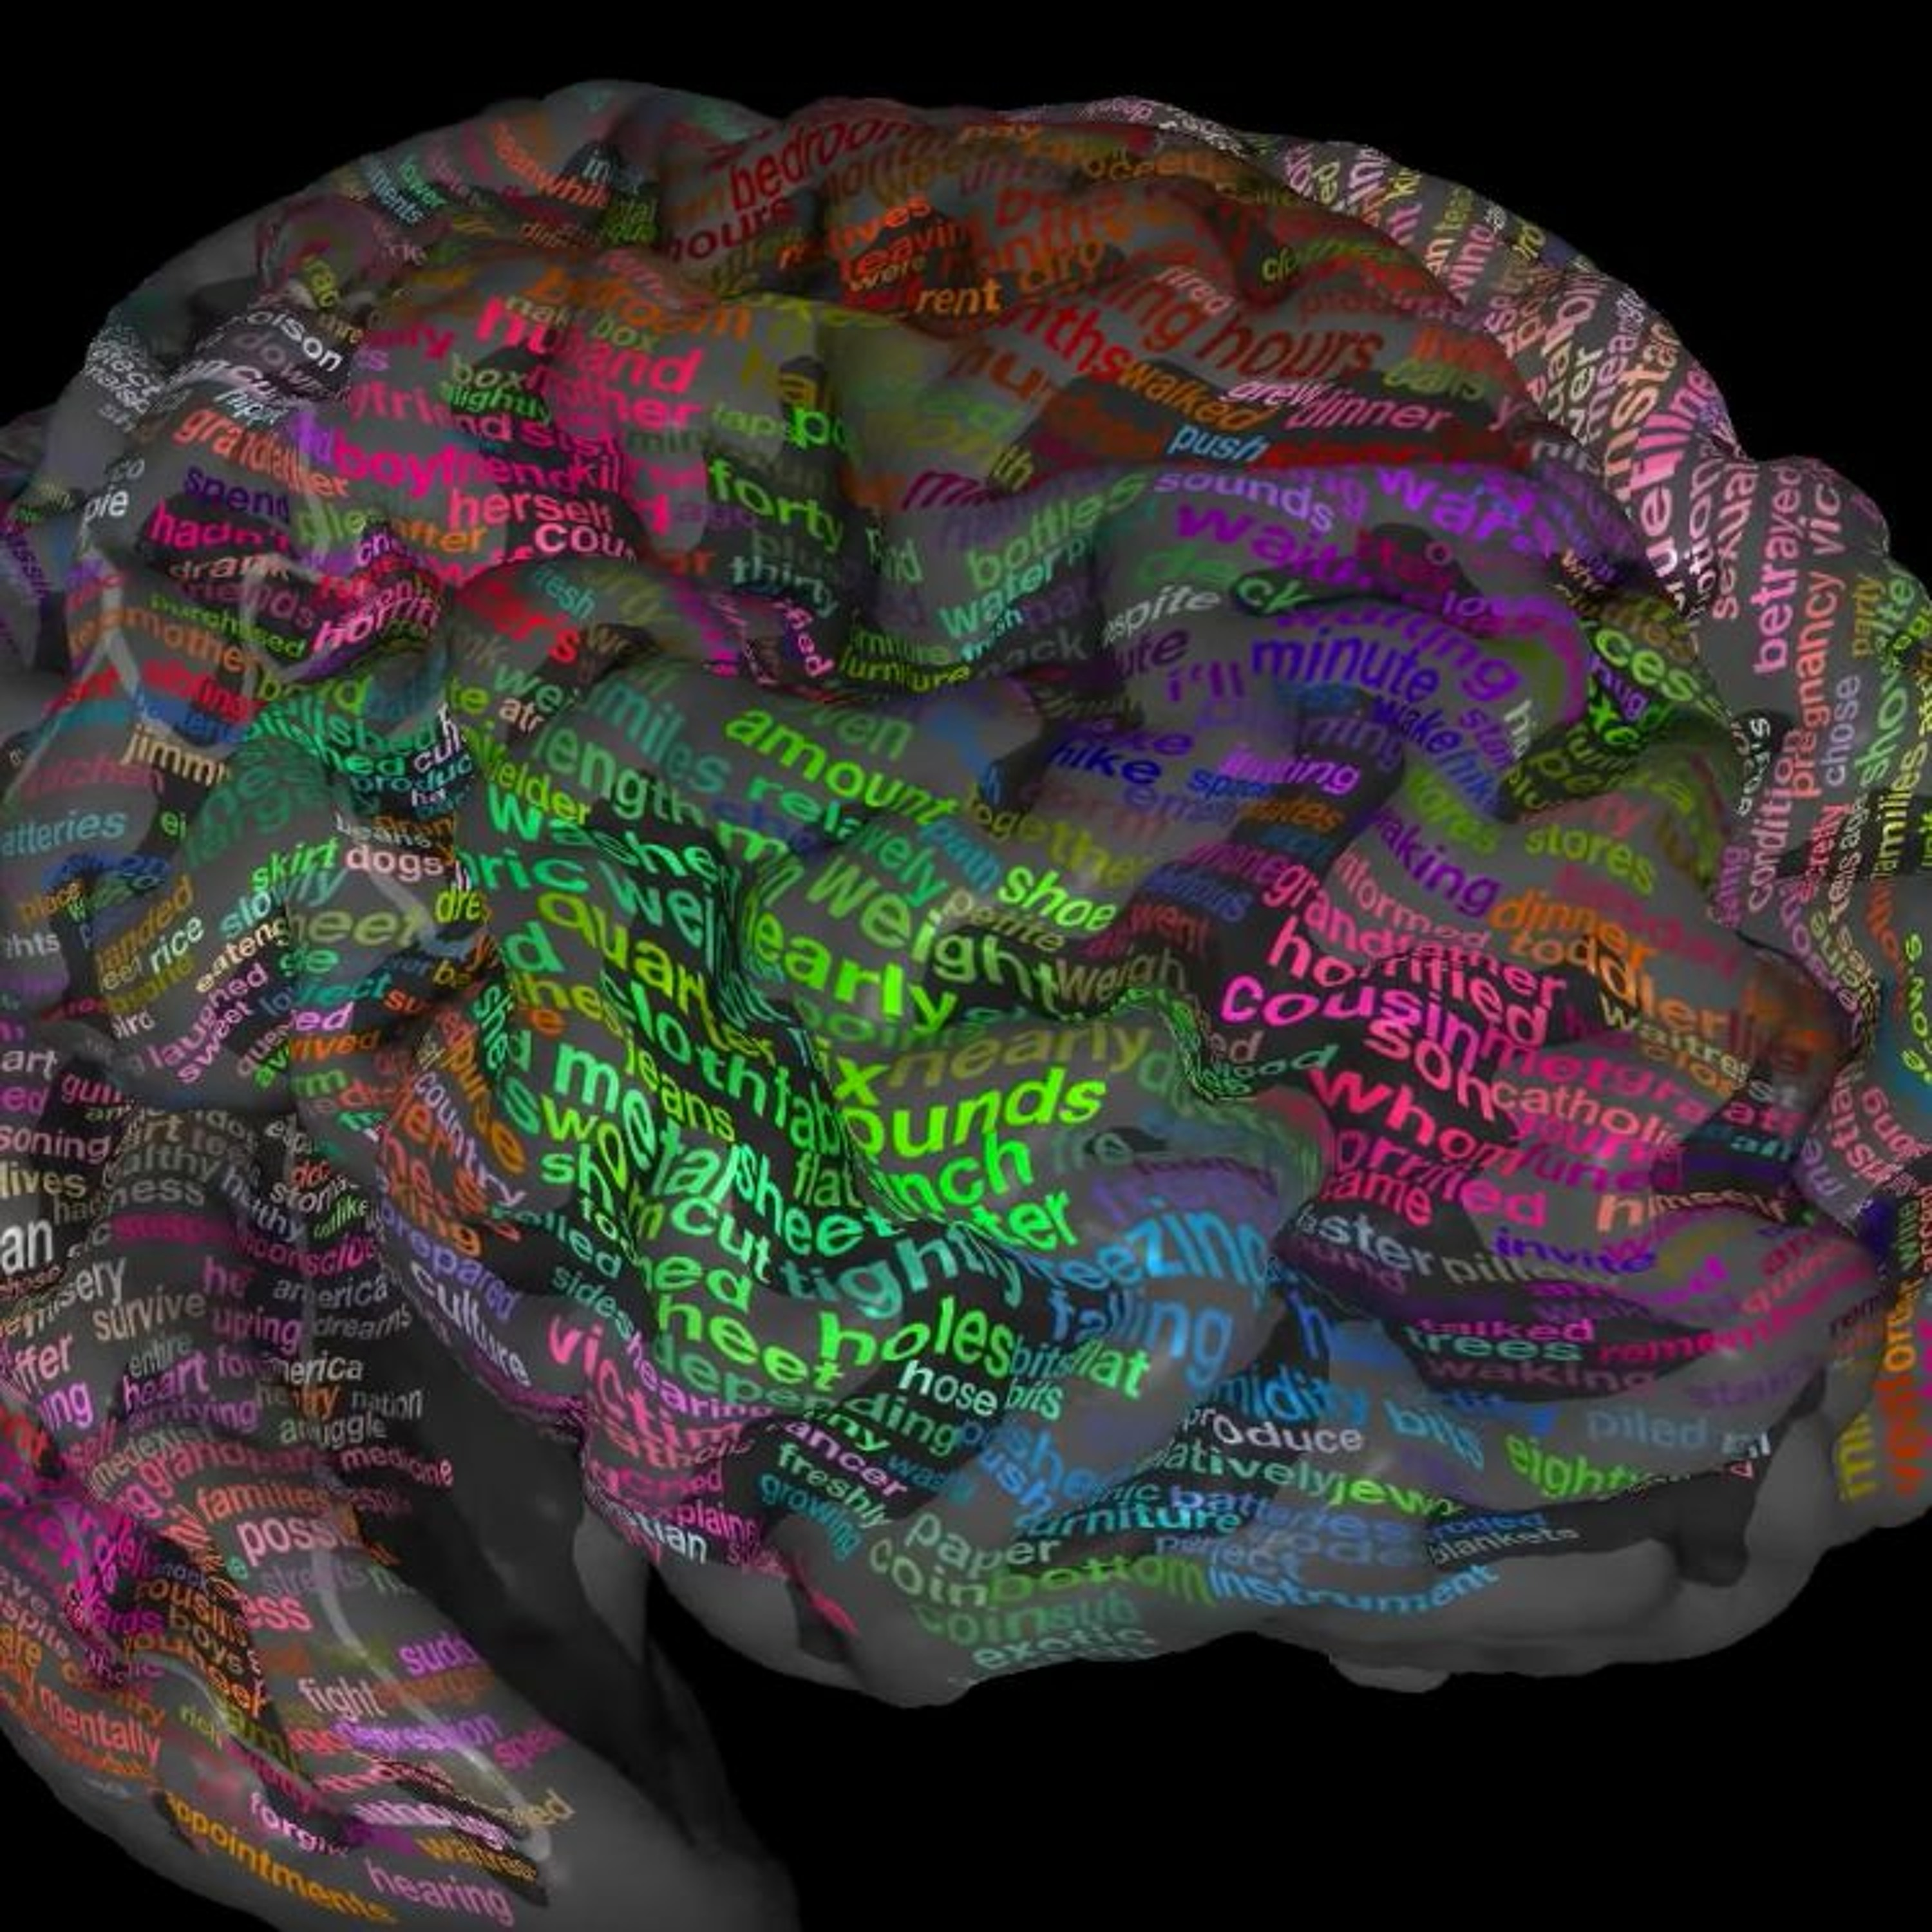 The ambition Brain Atlas Project